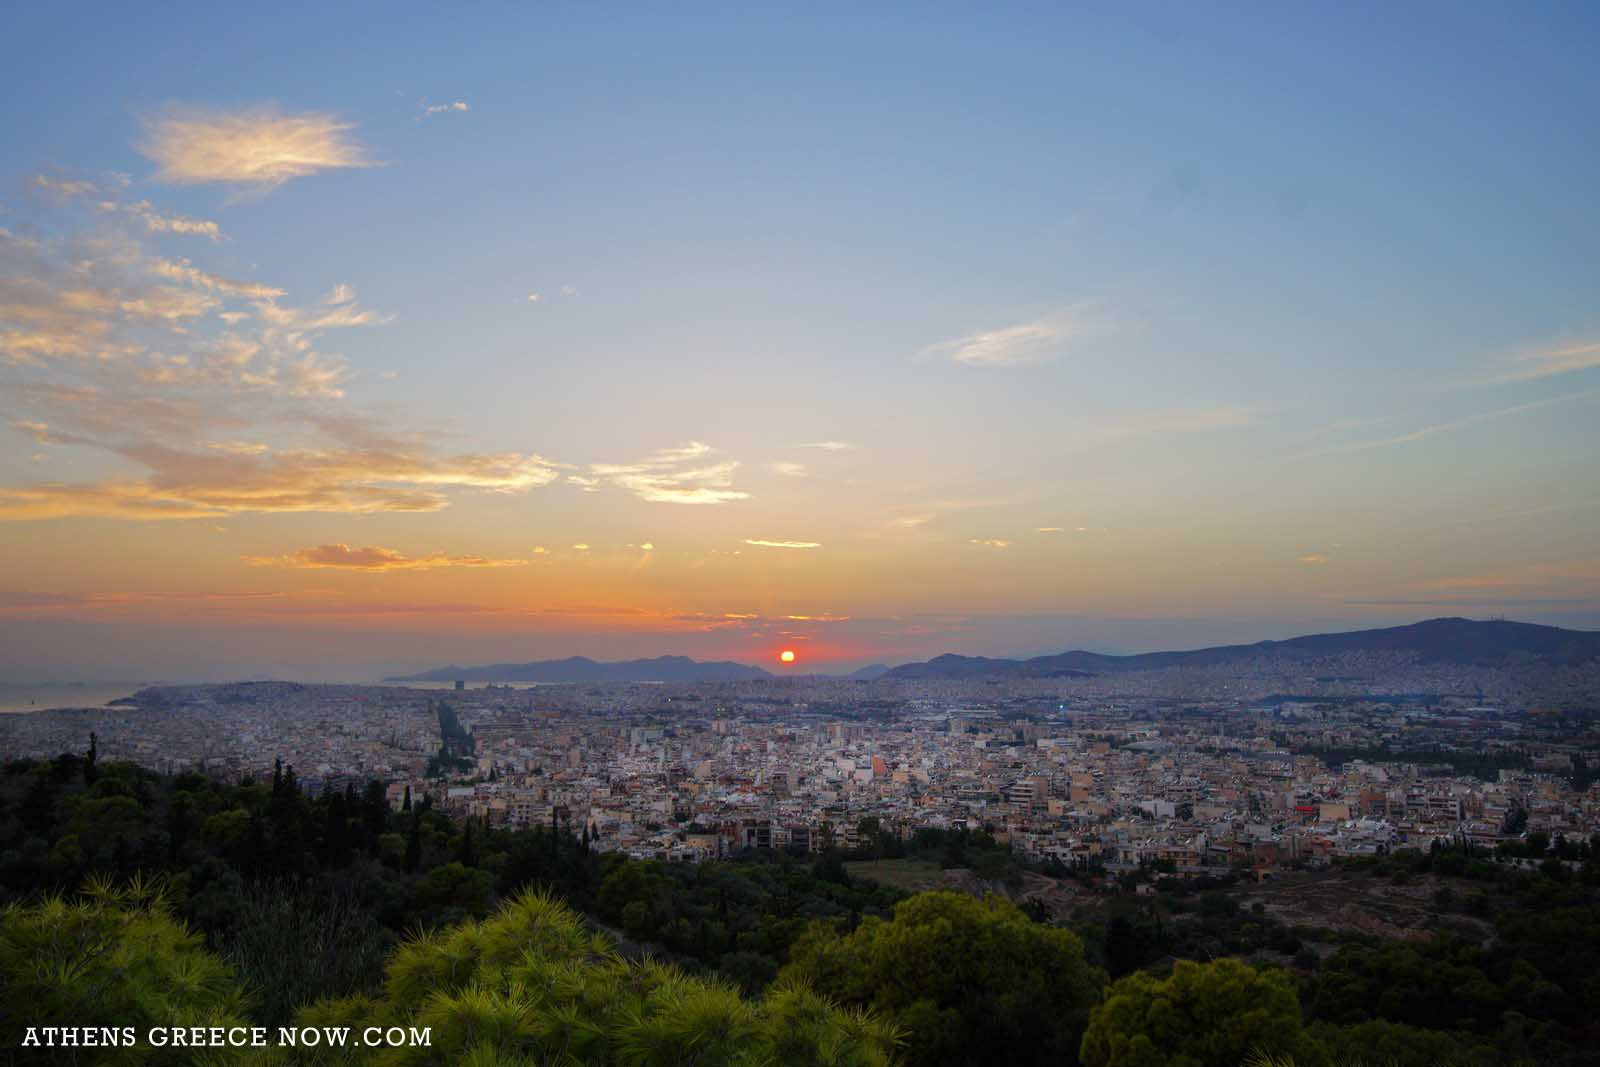 Enlarged - Sunset over Athens Greece